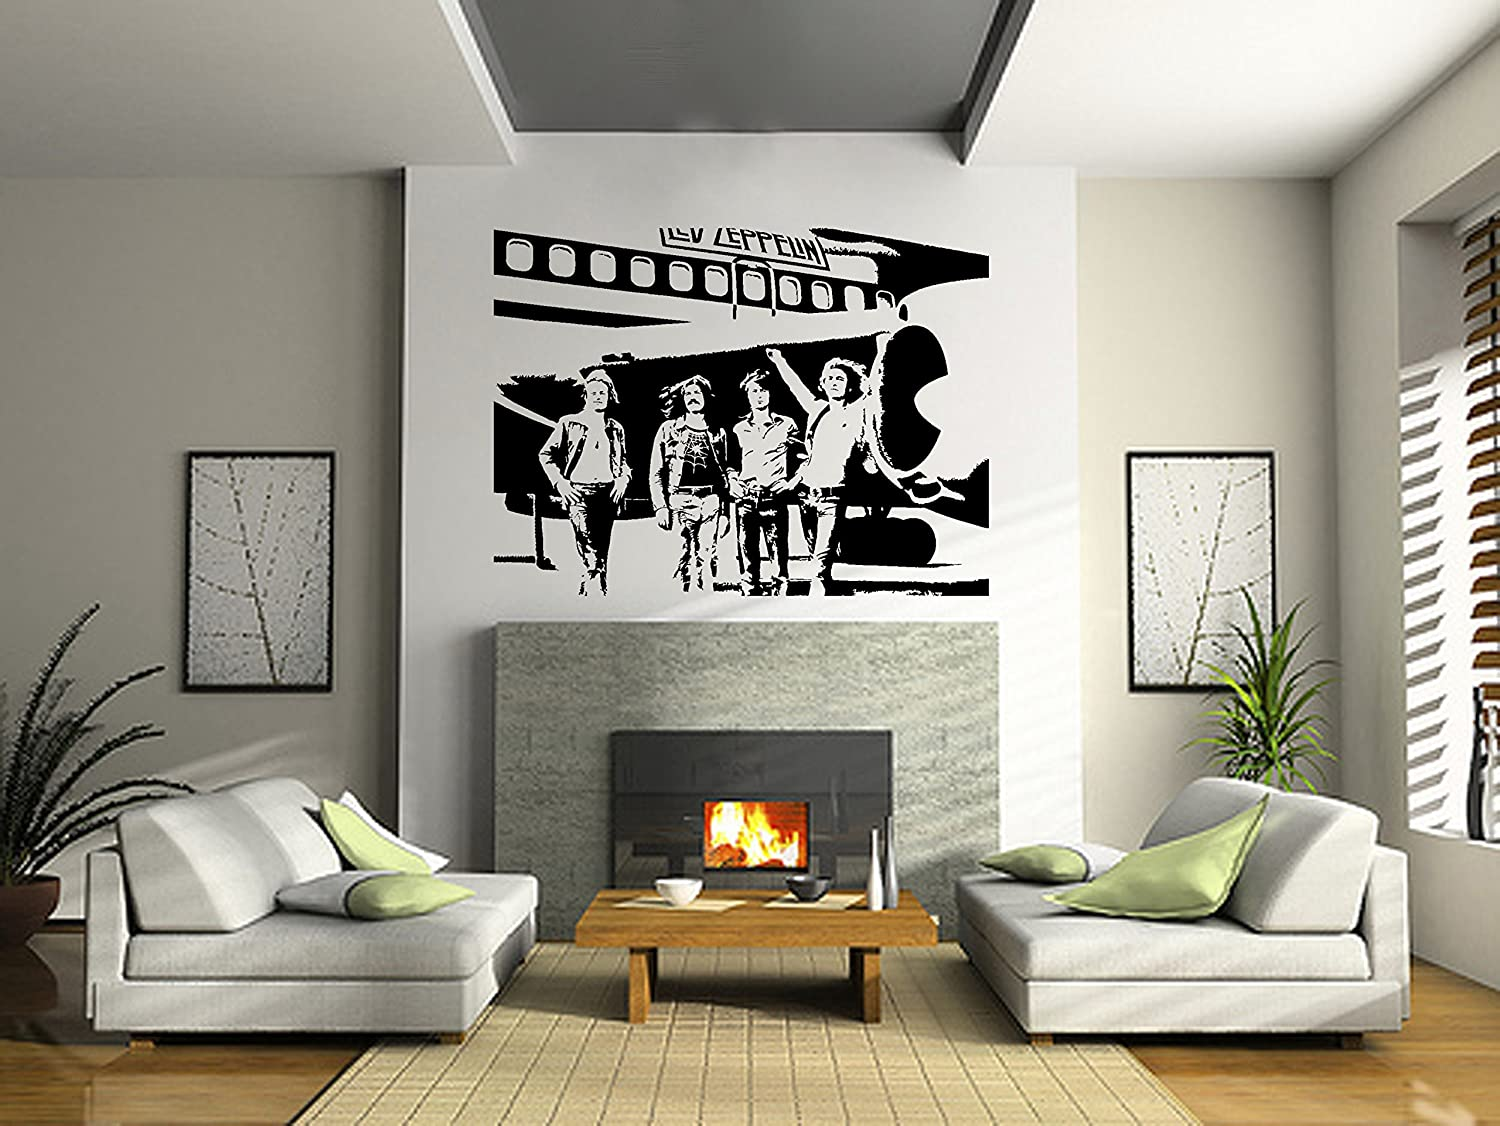 amazon com led zeppelin wall art sticker rock music decal band amazon com led zeppelin wall art sticker rock music decal band vinyl mural wa661 exlarge 148cm w x 110cm h home kitchen